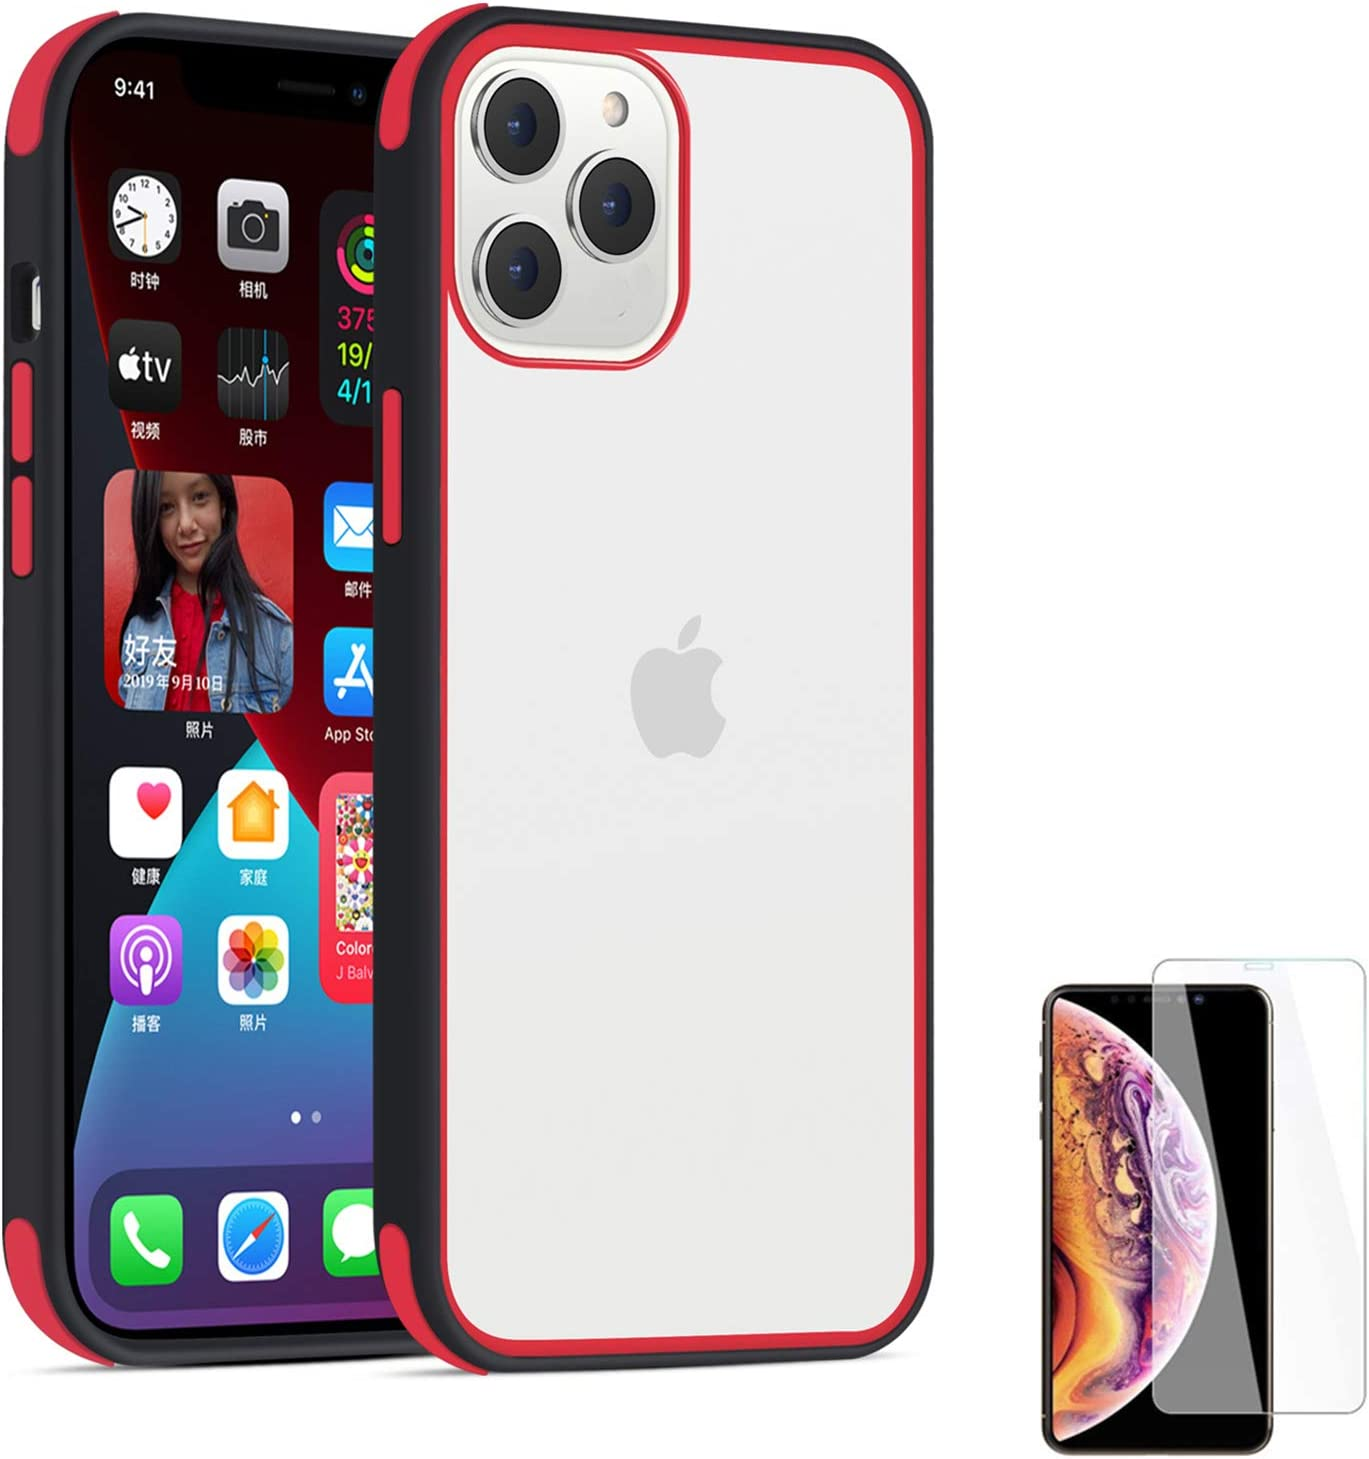 Crystal Clear Case Compatible with iPhone 12 Mini 5.4 inch (2020),Heavy Duty Protective Hard Back PC Soft Shockproof Bumper Cover with Screen Protector (Black Edge+Red)